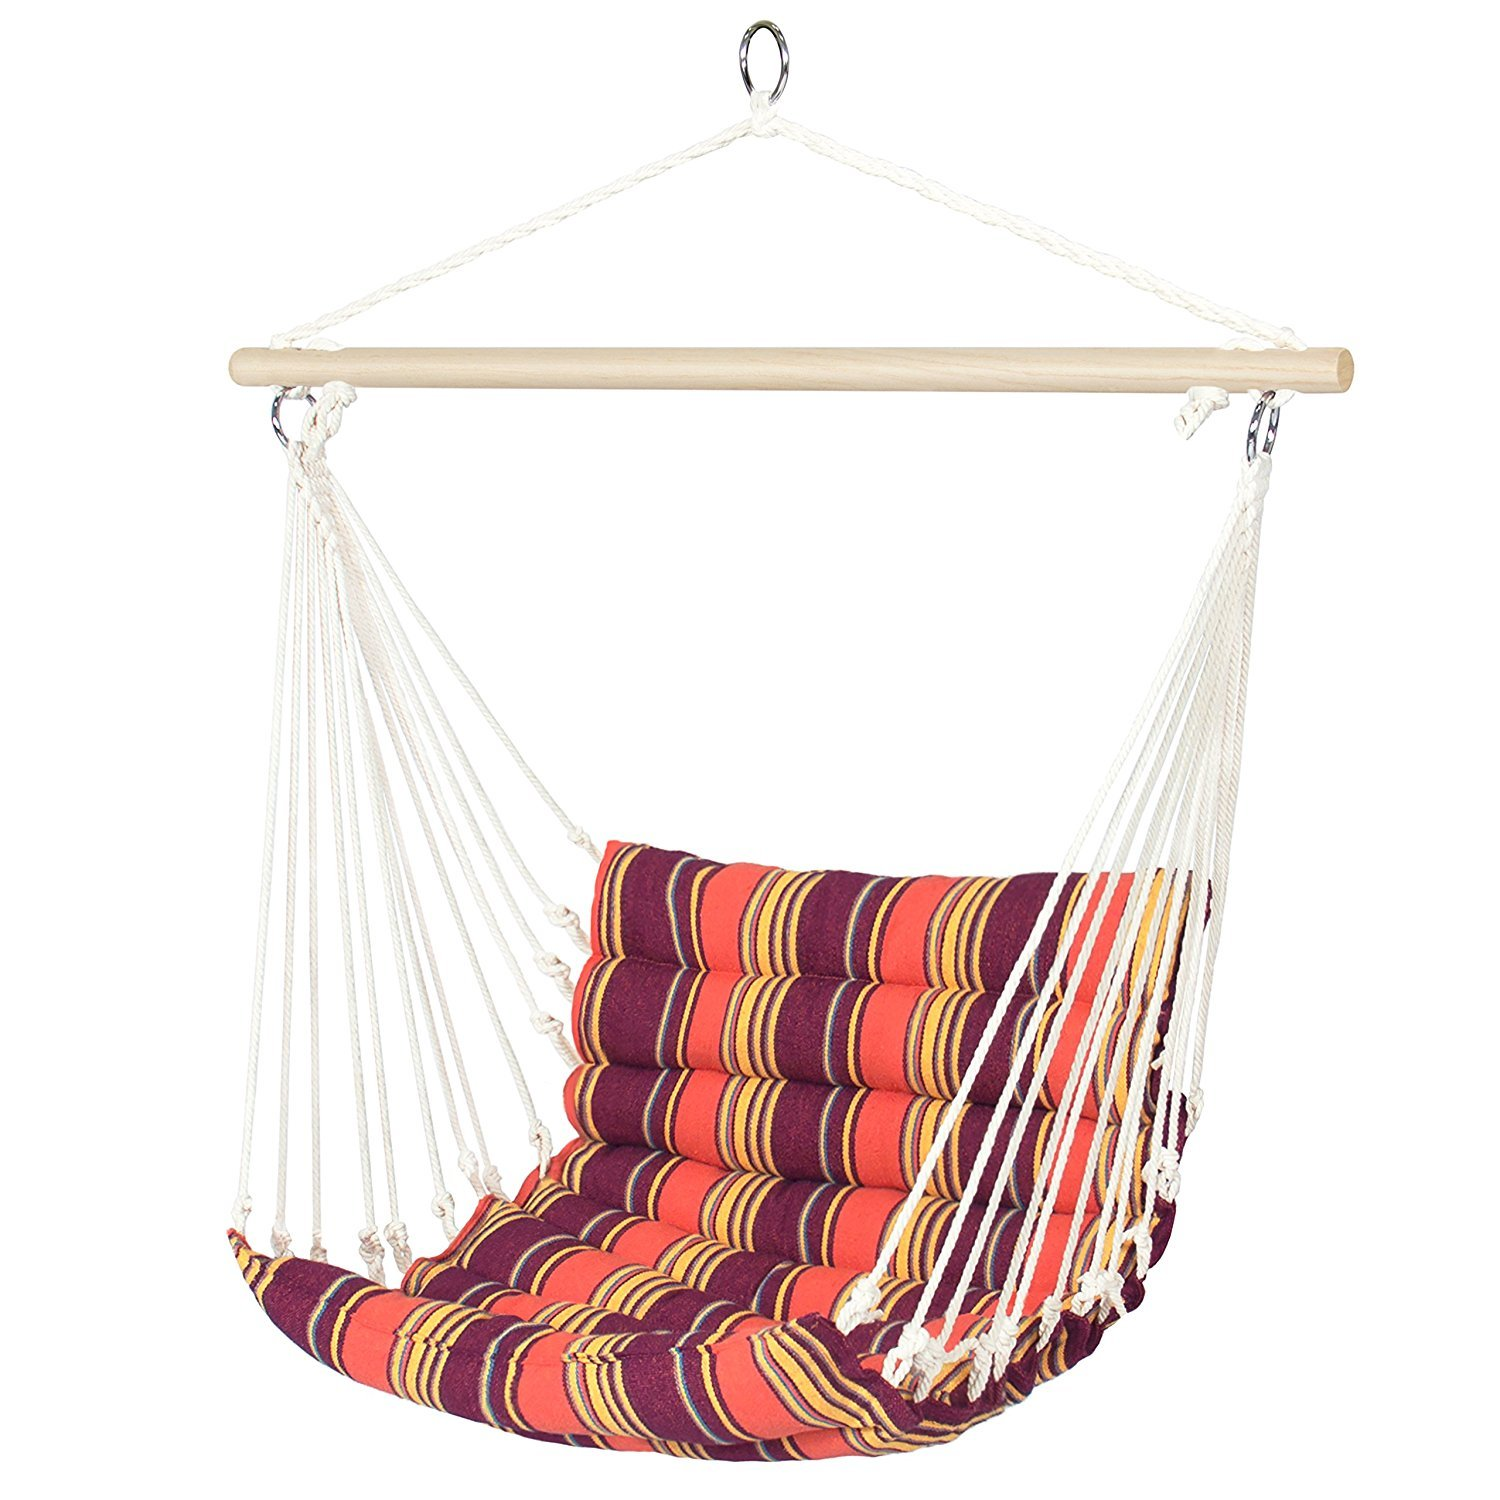 BCP Porch Swing Hammock Patio Swings Outdoor Small Hanging Cotton Chair Rope Single Seat Modern (Orange)